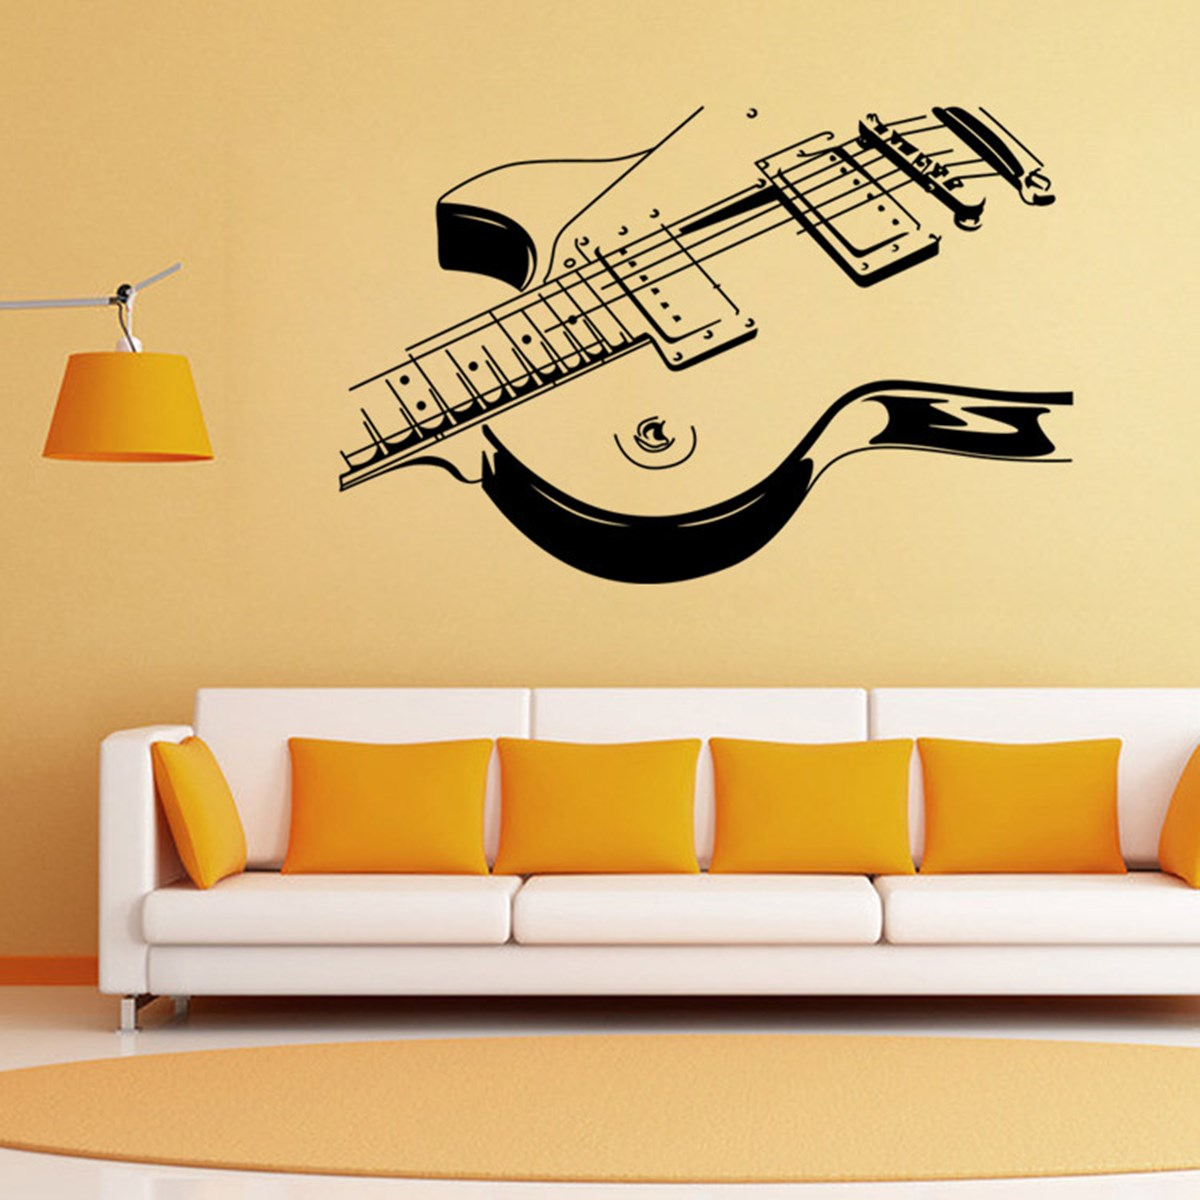 Excellent Musical Wall Art Gallery - The Wall Art Decorations ...